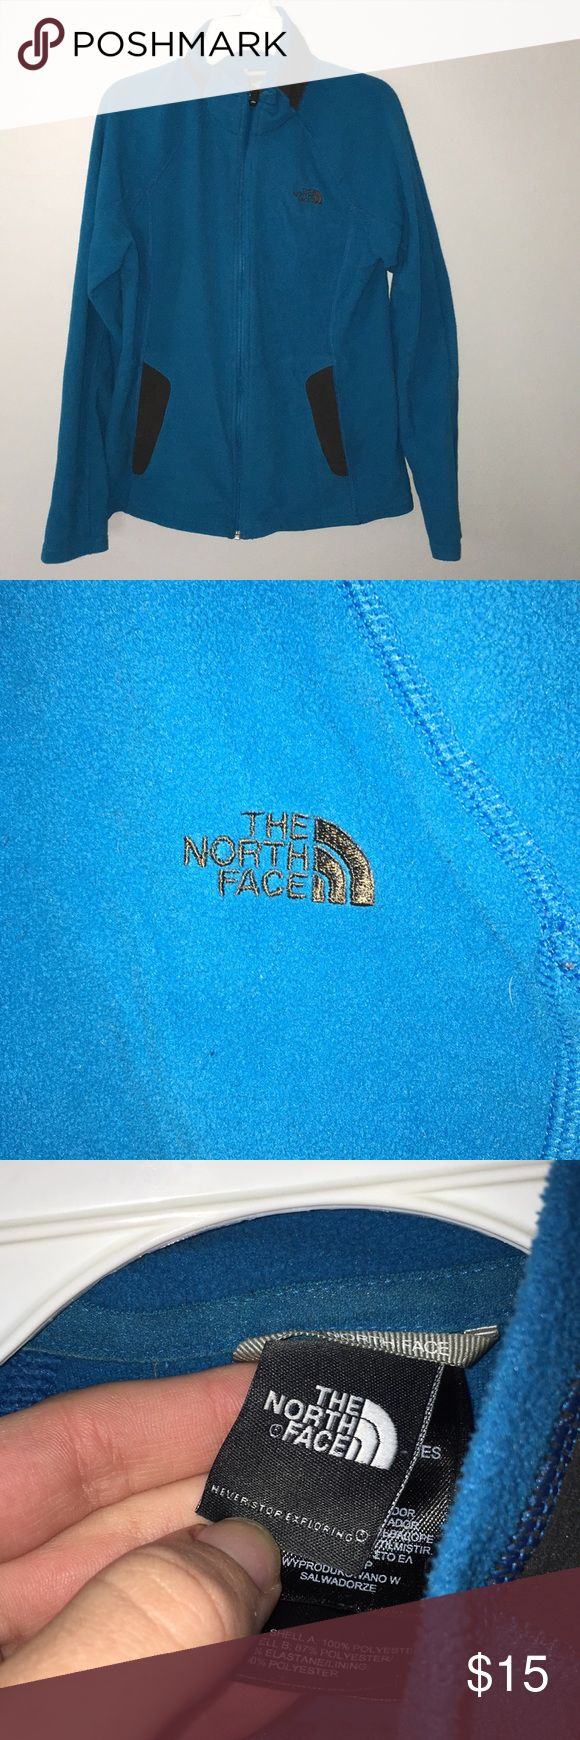 North face jacket Very pretty blue north face jacket, no signs of wear or tear!! North Face Jackets & Coats